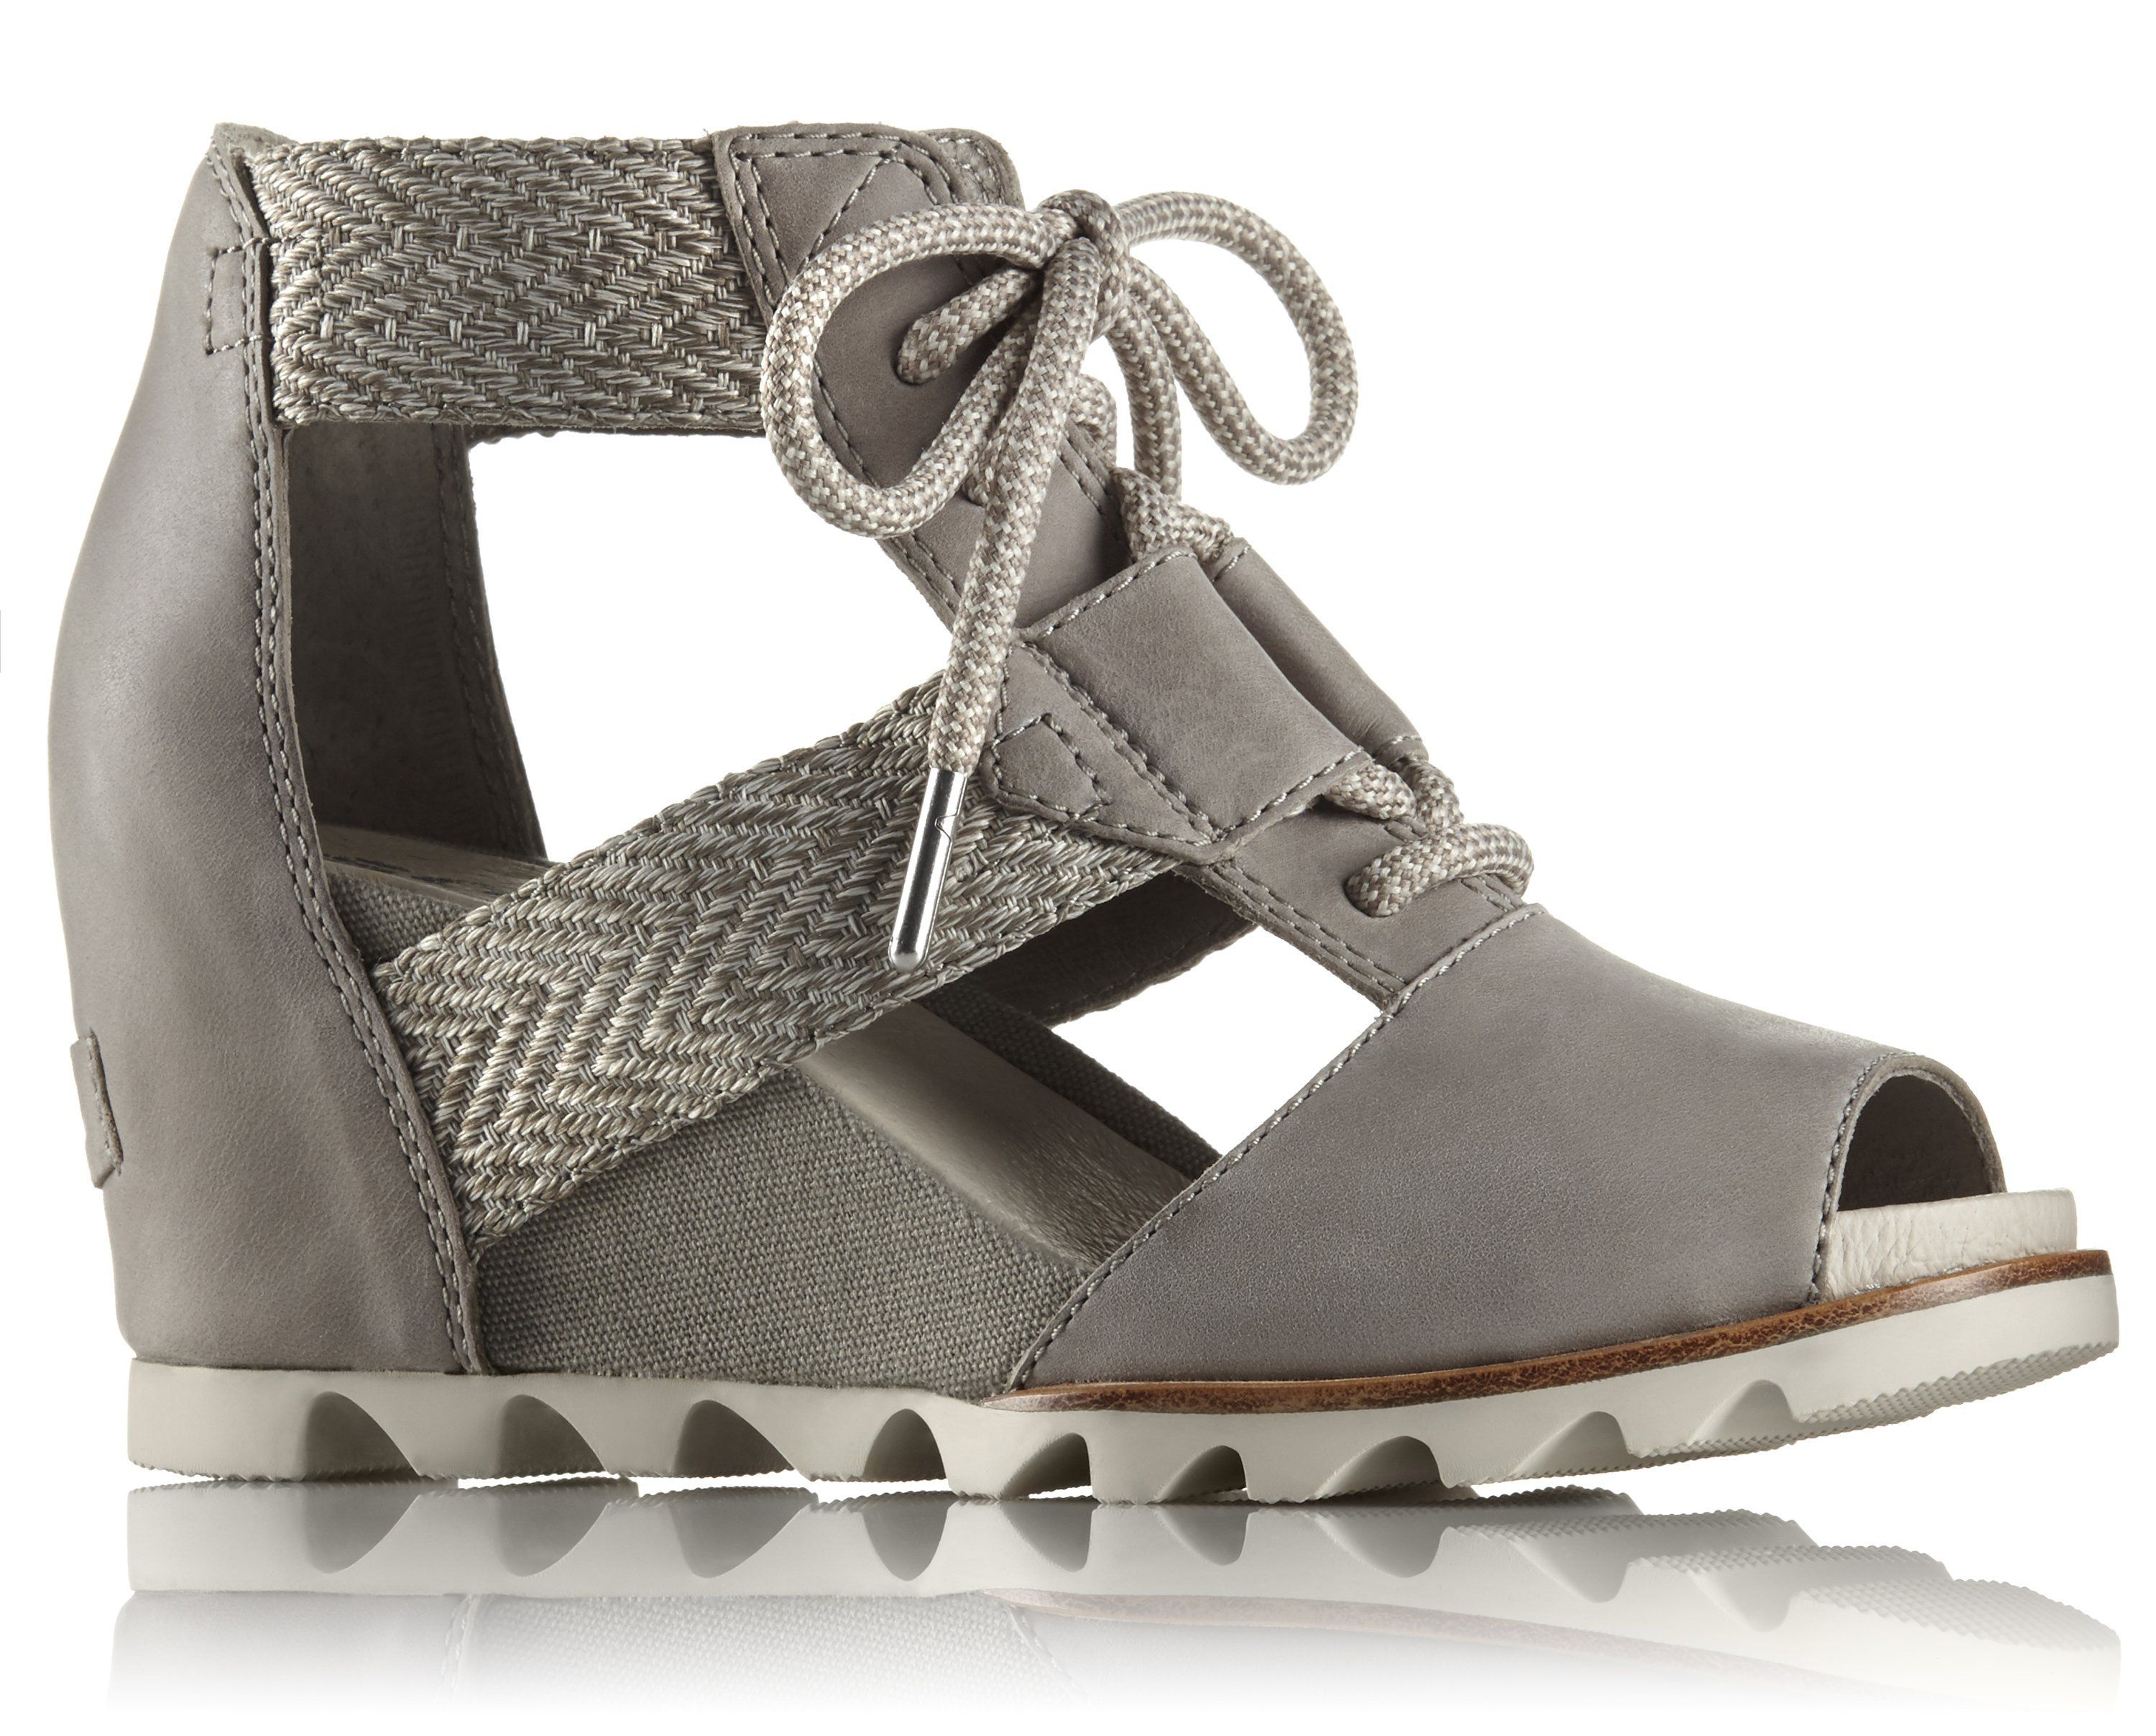 e7d9d64e6f6 The sorel joanie lace wedge sandal new colors for spring summer jpg  3000x2415 Sorel spring